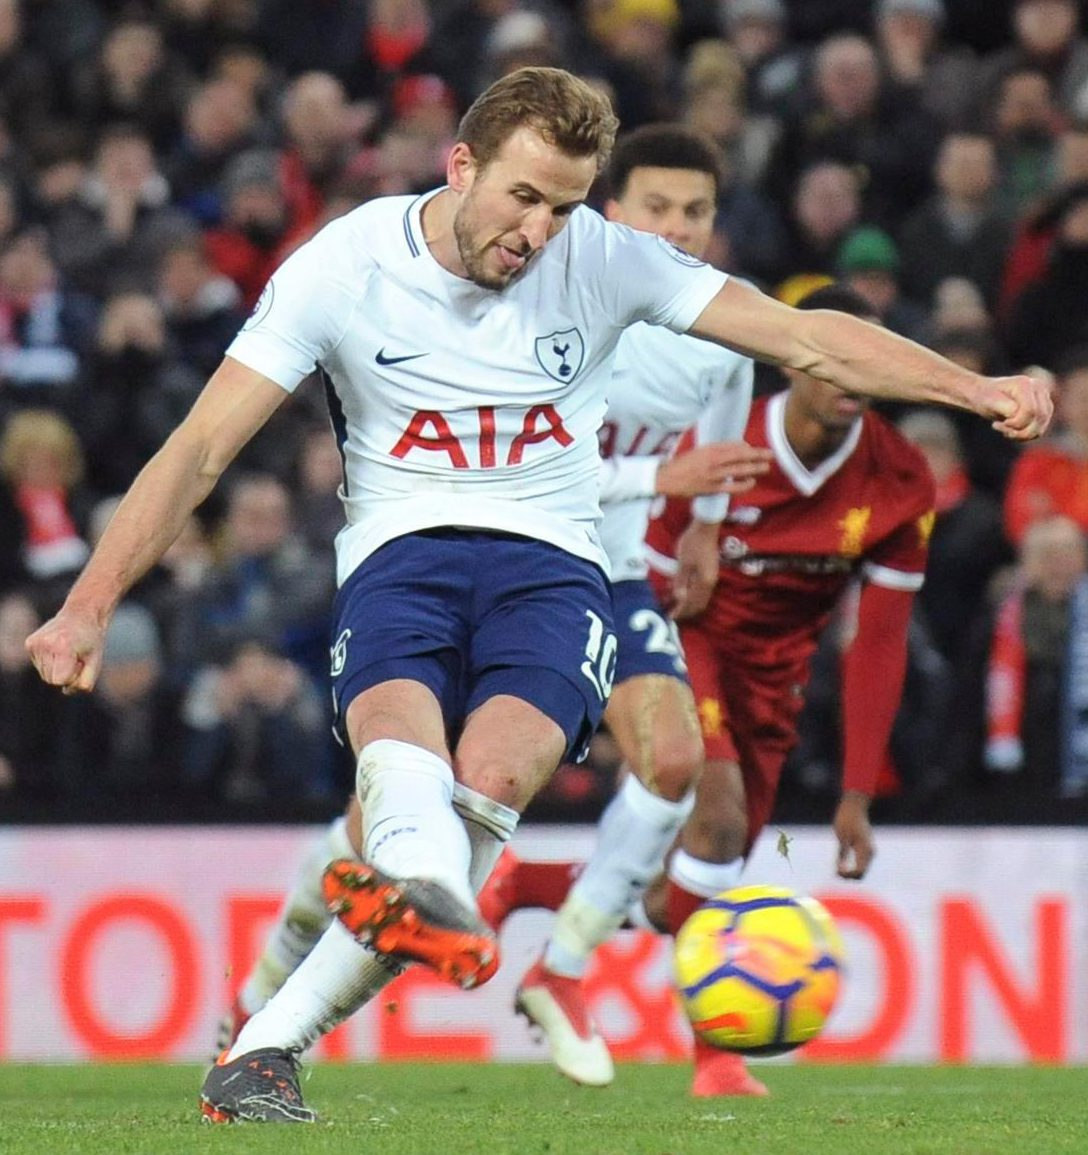 Amid all the drama at Anfield Kane stepped up and scored the equalising penalty after missing one earlier